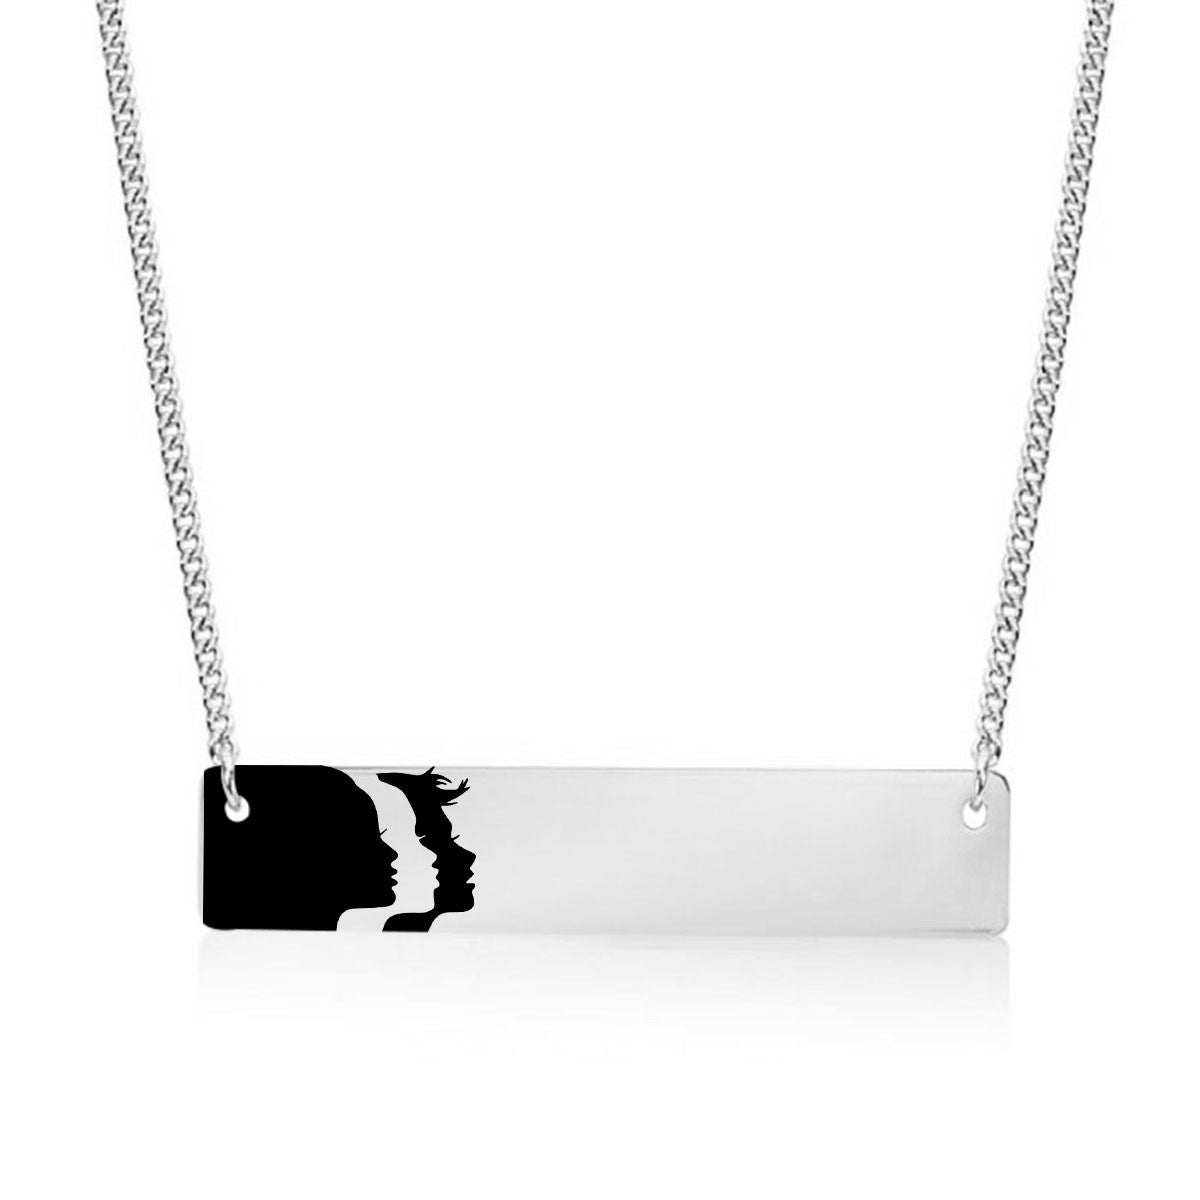 Woman's March Logo Gold / Silver Bar Necklace